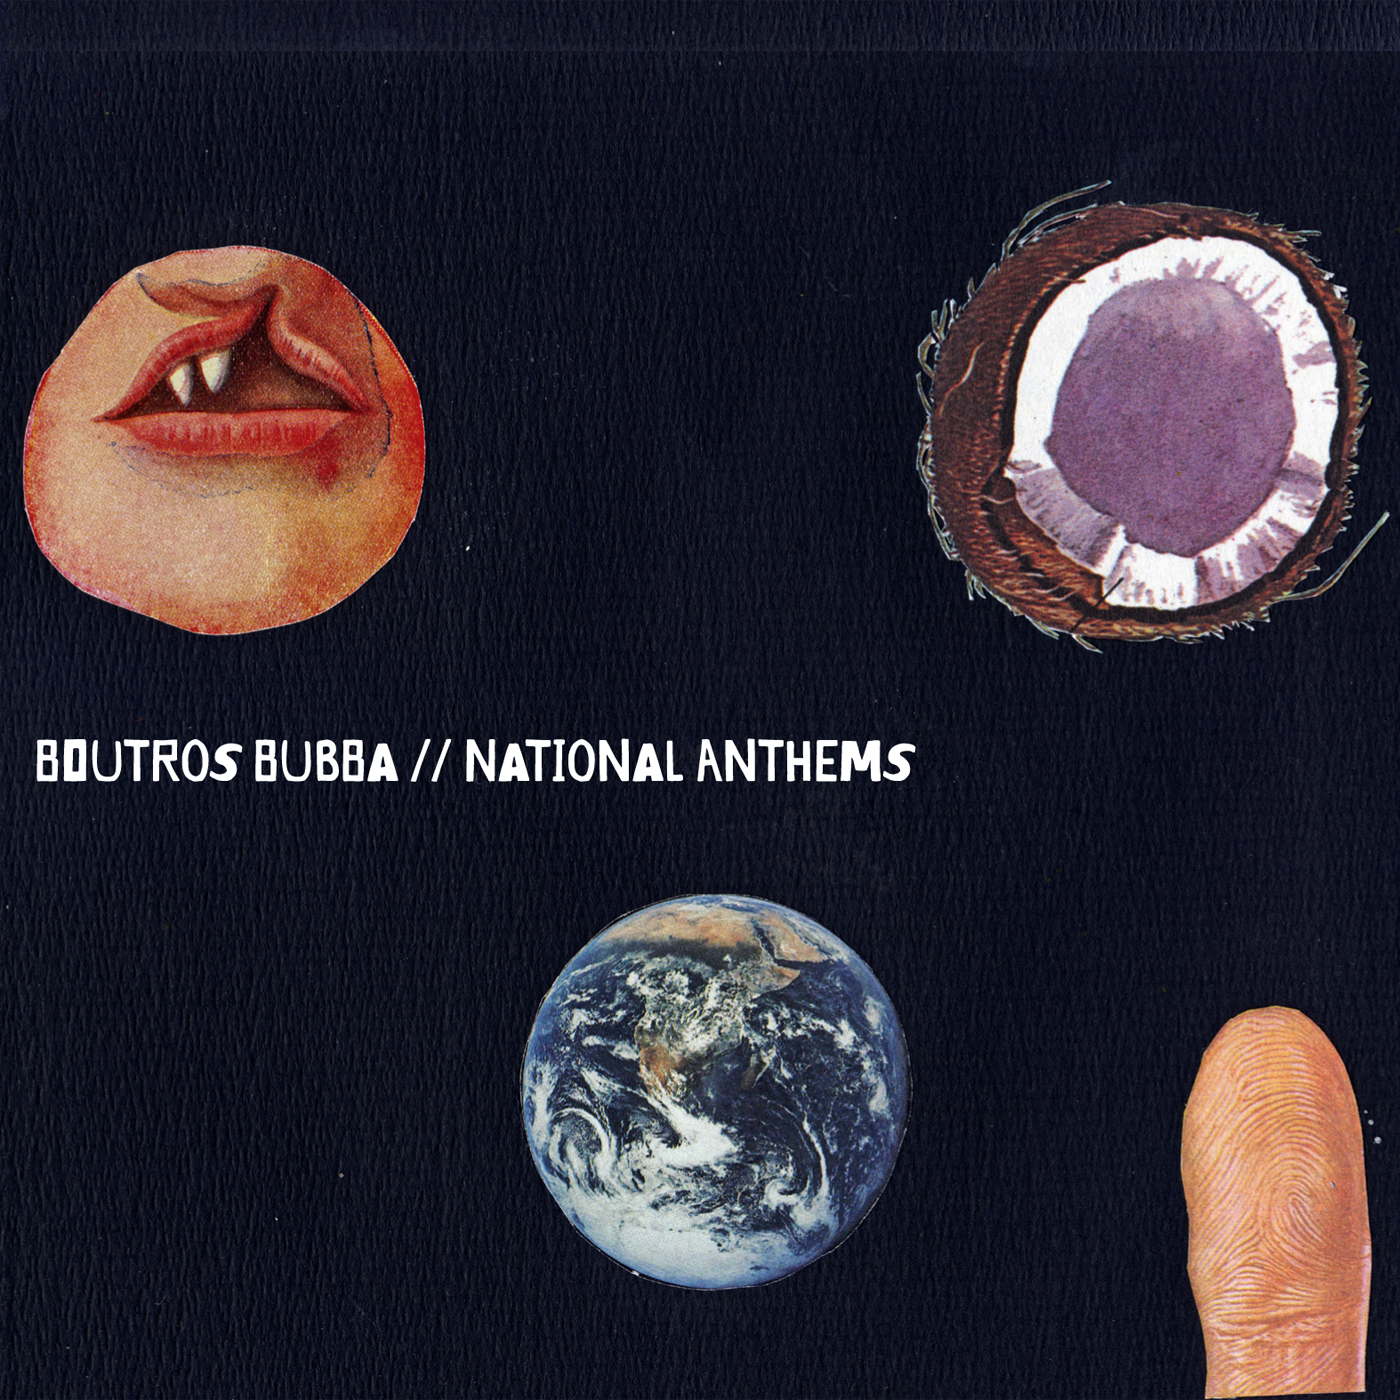 NM034: boutros bubba - national anthems